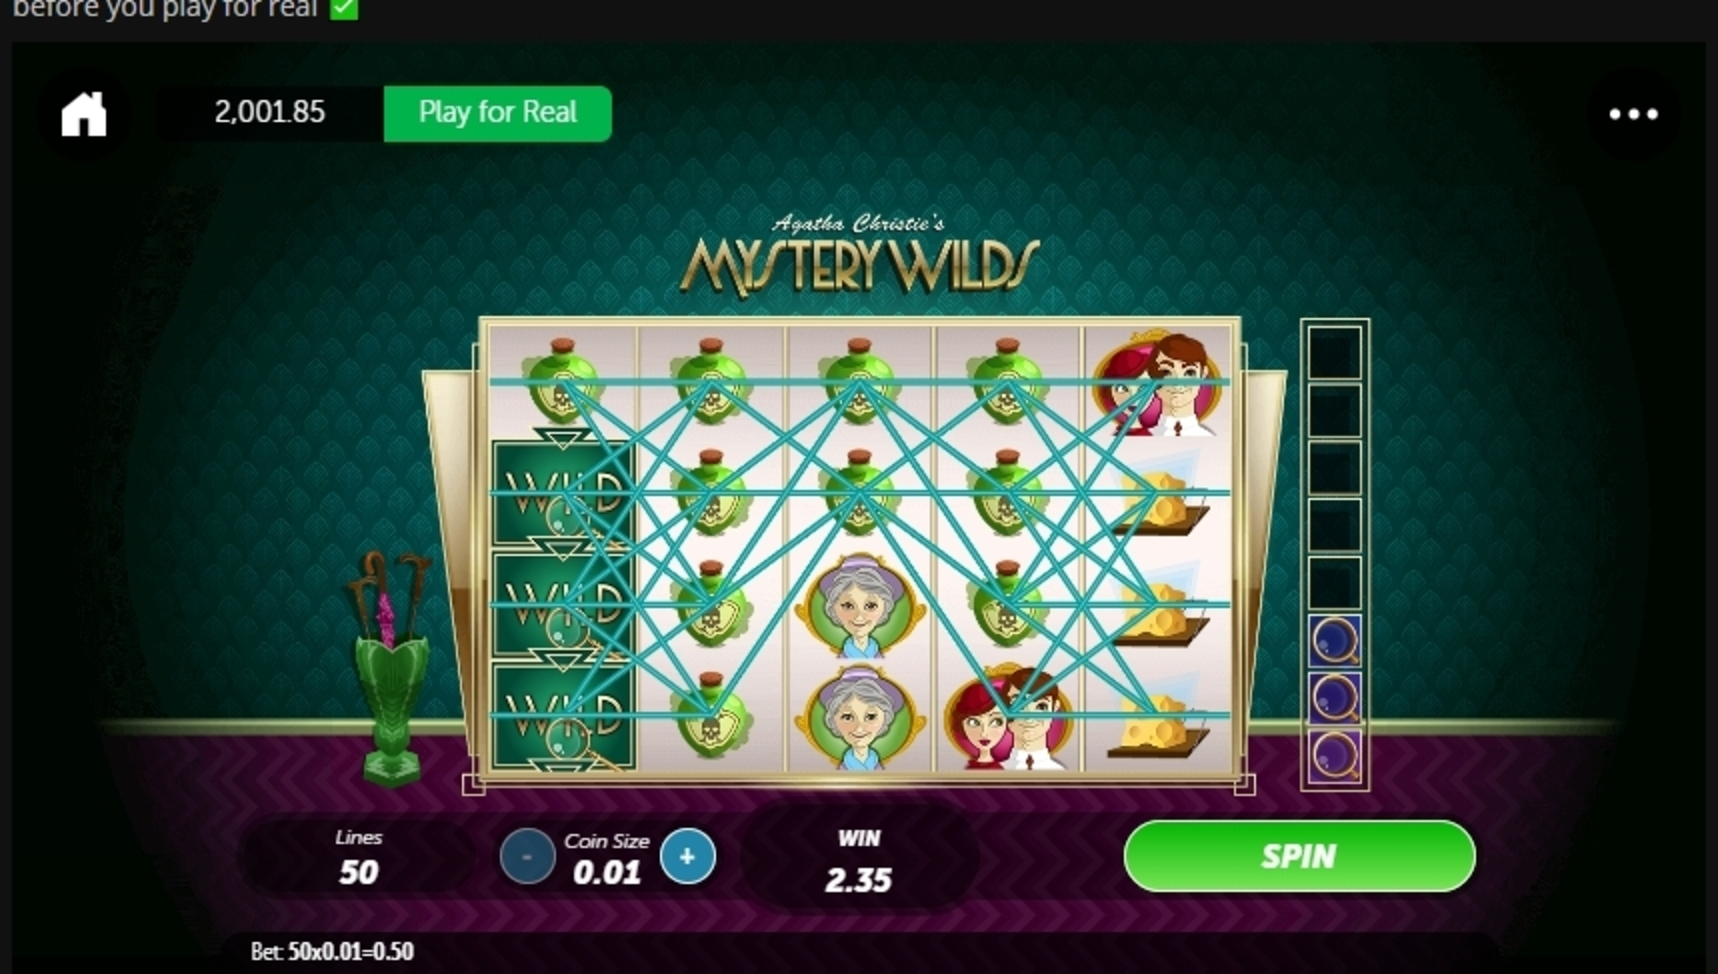 Win Money in Agatha Christie's Mystery Wilds Free Slot Game by Gamesys